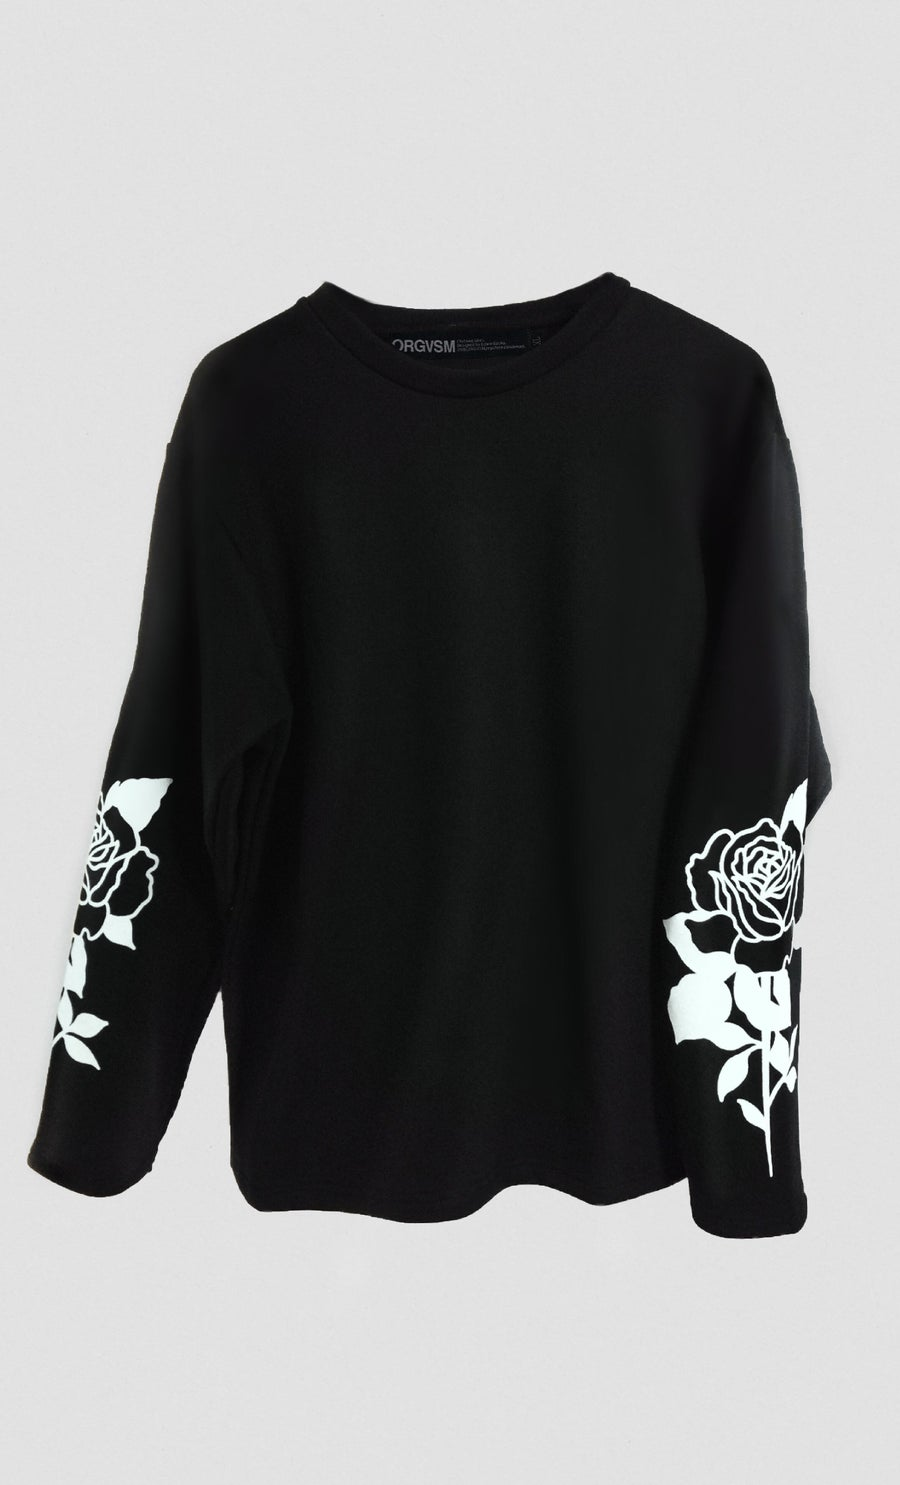 Image of ORGVSM BLACK LONG SLEEVE //PRE ORDER